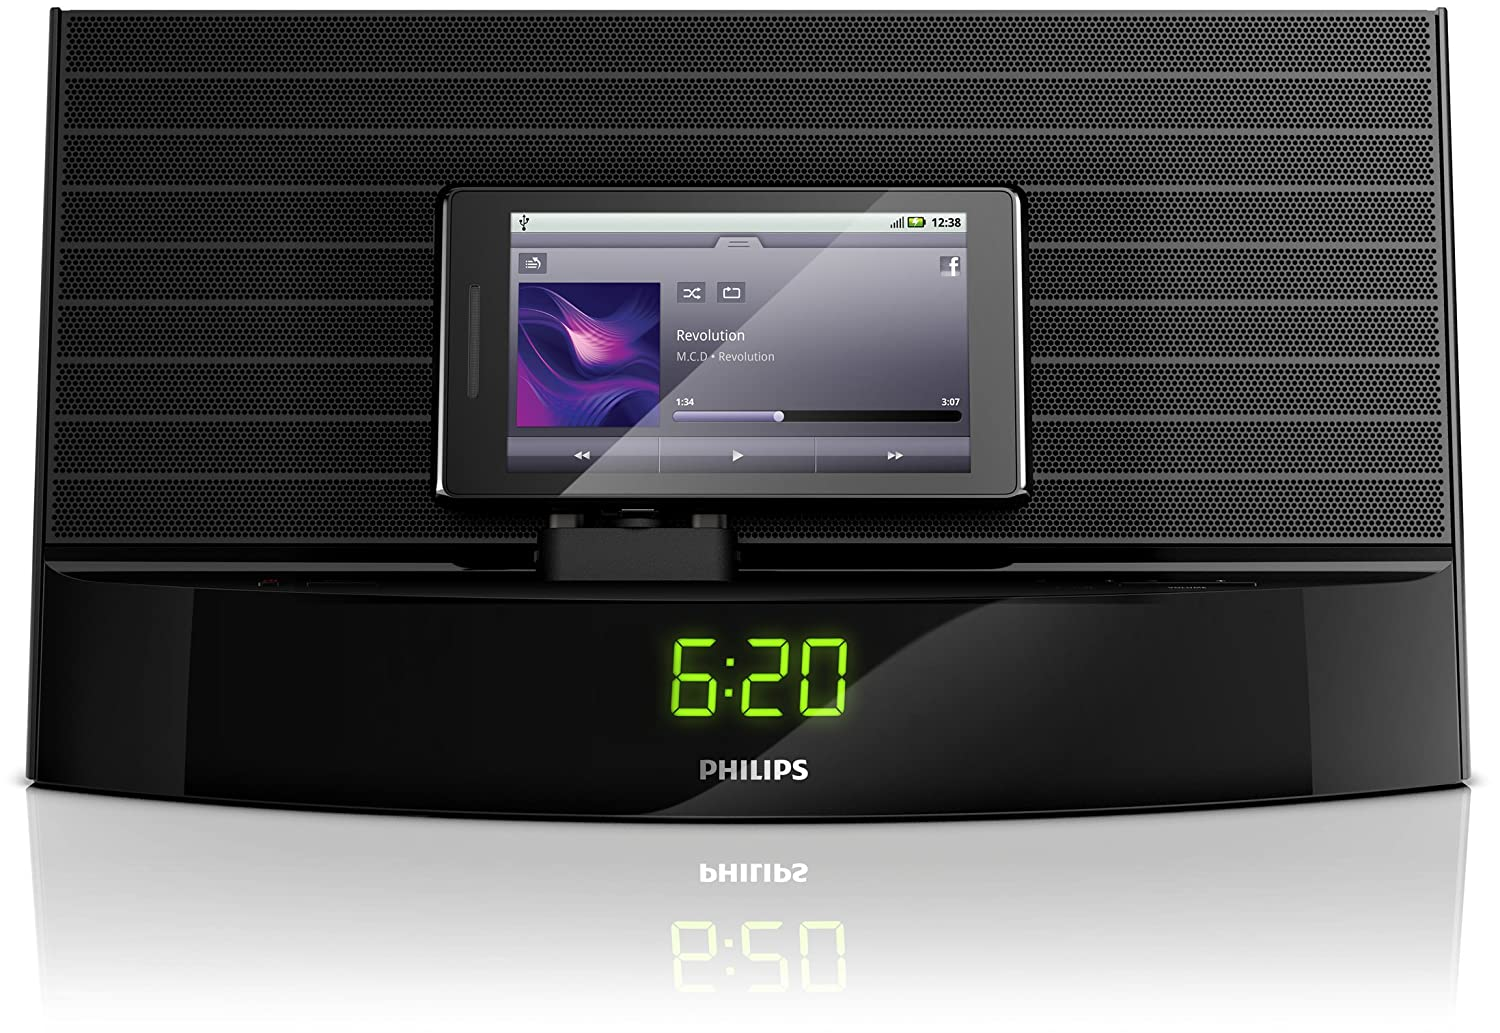 Philips AS140/37 Fidelio Bluetooth Speaker with Micro-USB Dock $57.41